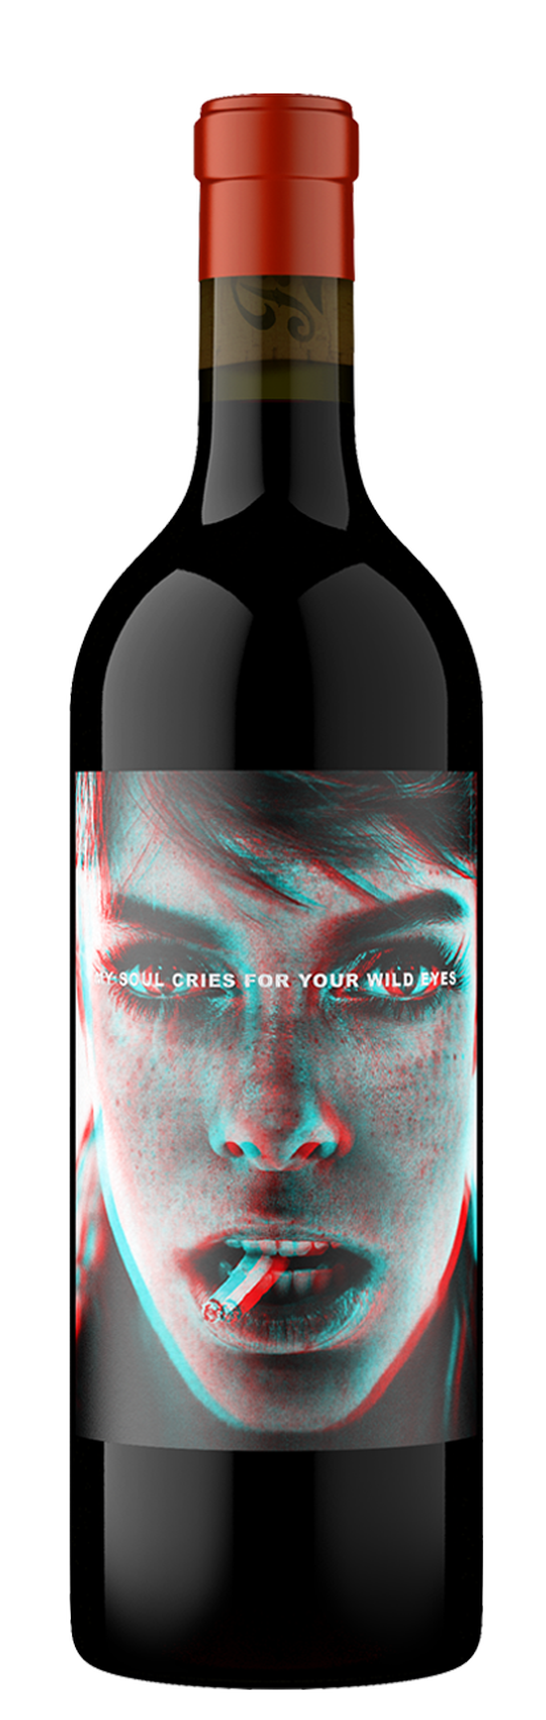 2017 Wild Eyes, Red Wine, Napa Valley